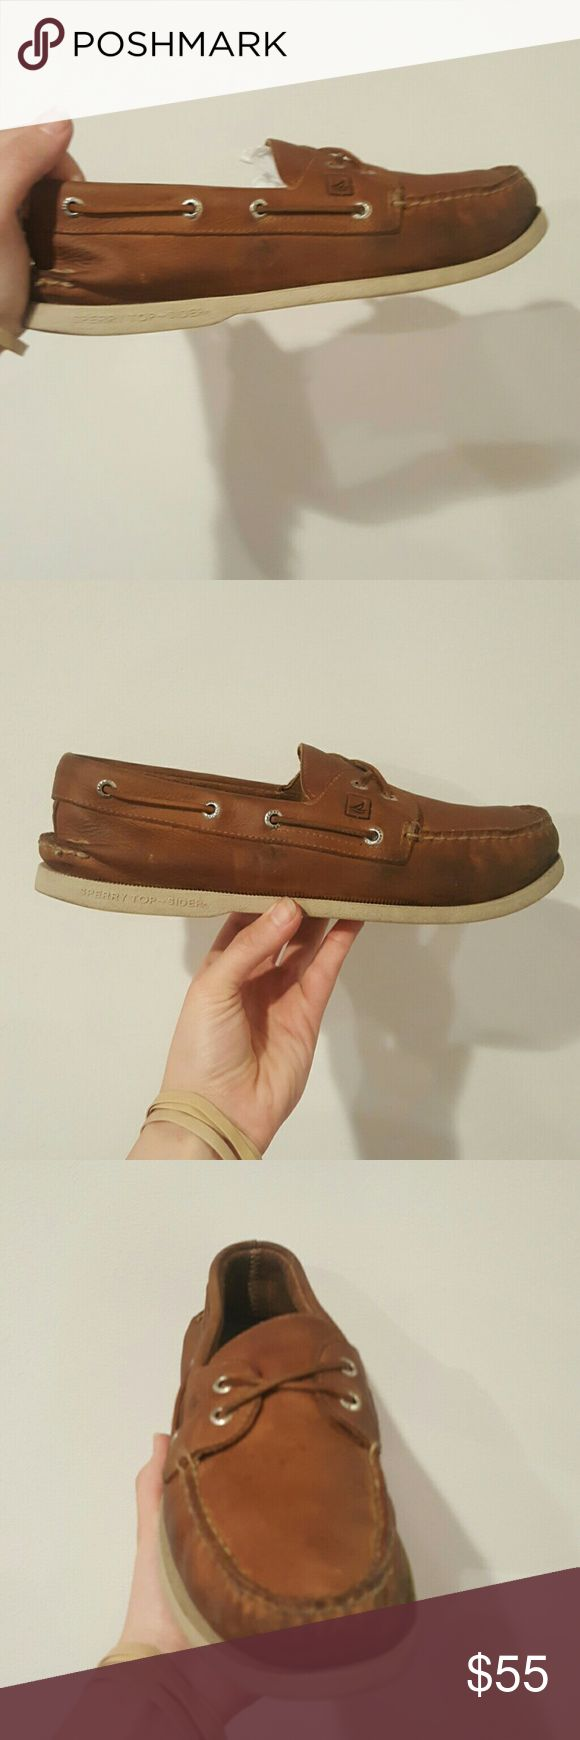 SPERRY MENS 10.5 SLIP ON BOAT SHOE SPERRY Topsider MENS 10.5 BROWN LEATHER BOAT SHOES SLIP ON STYLE NO LACES GOOD USED CONDITION LOTS OF LIFE LEFT Sperry Shoes Boat Shoes